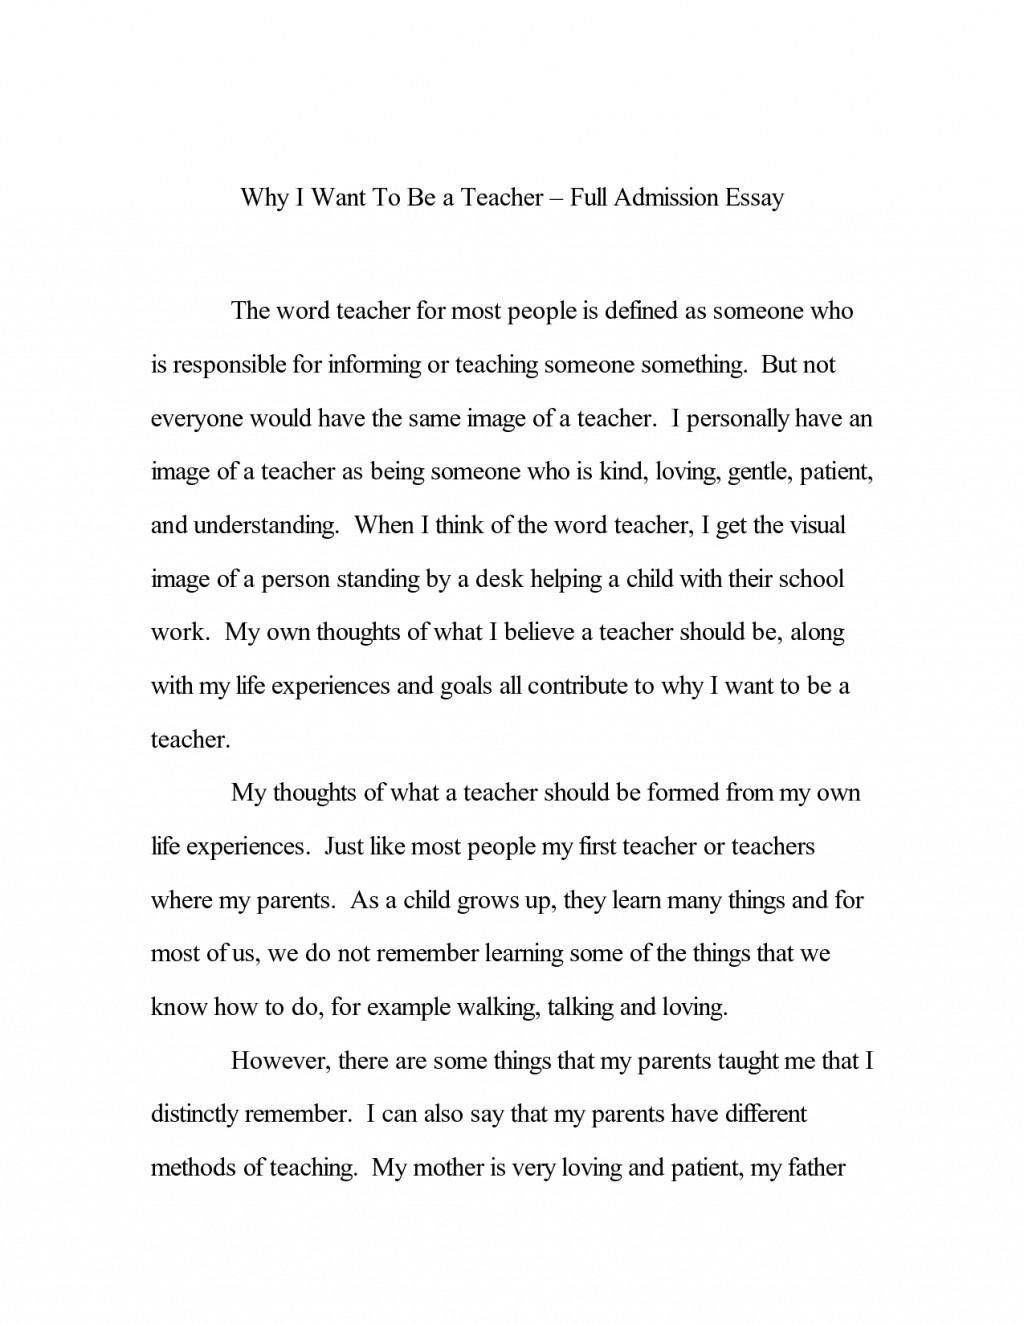 004 How To Write College Entrance Essay Striking A Good Introduction For Application Admissions Successful Large